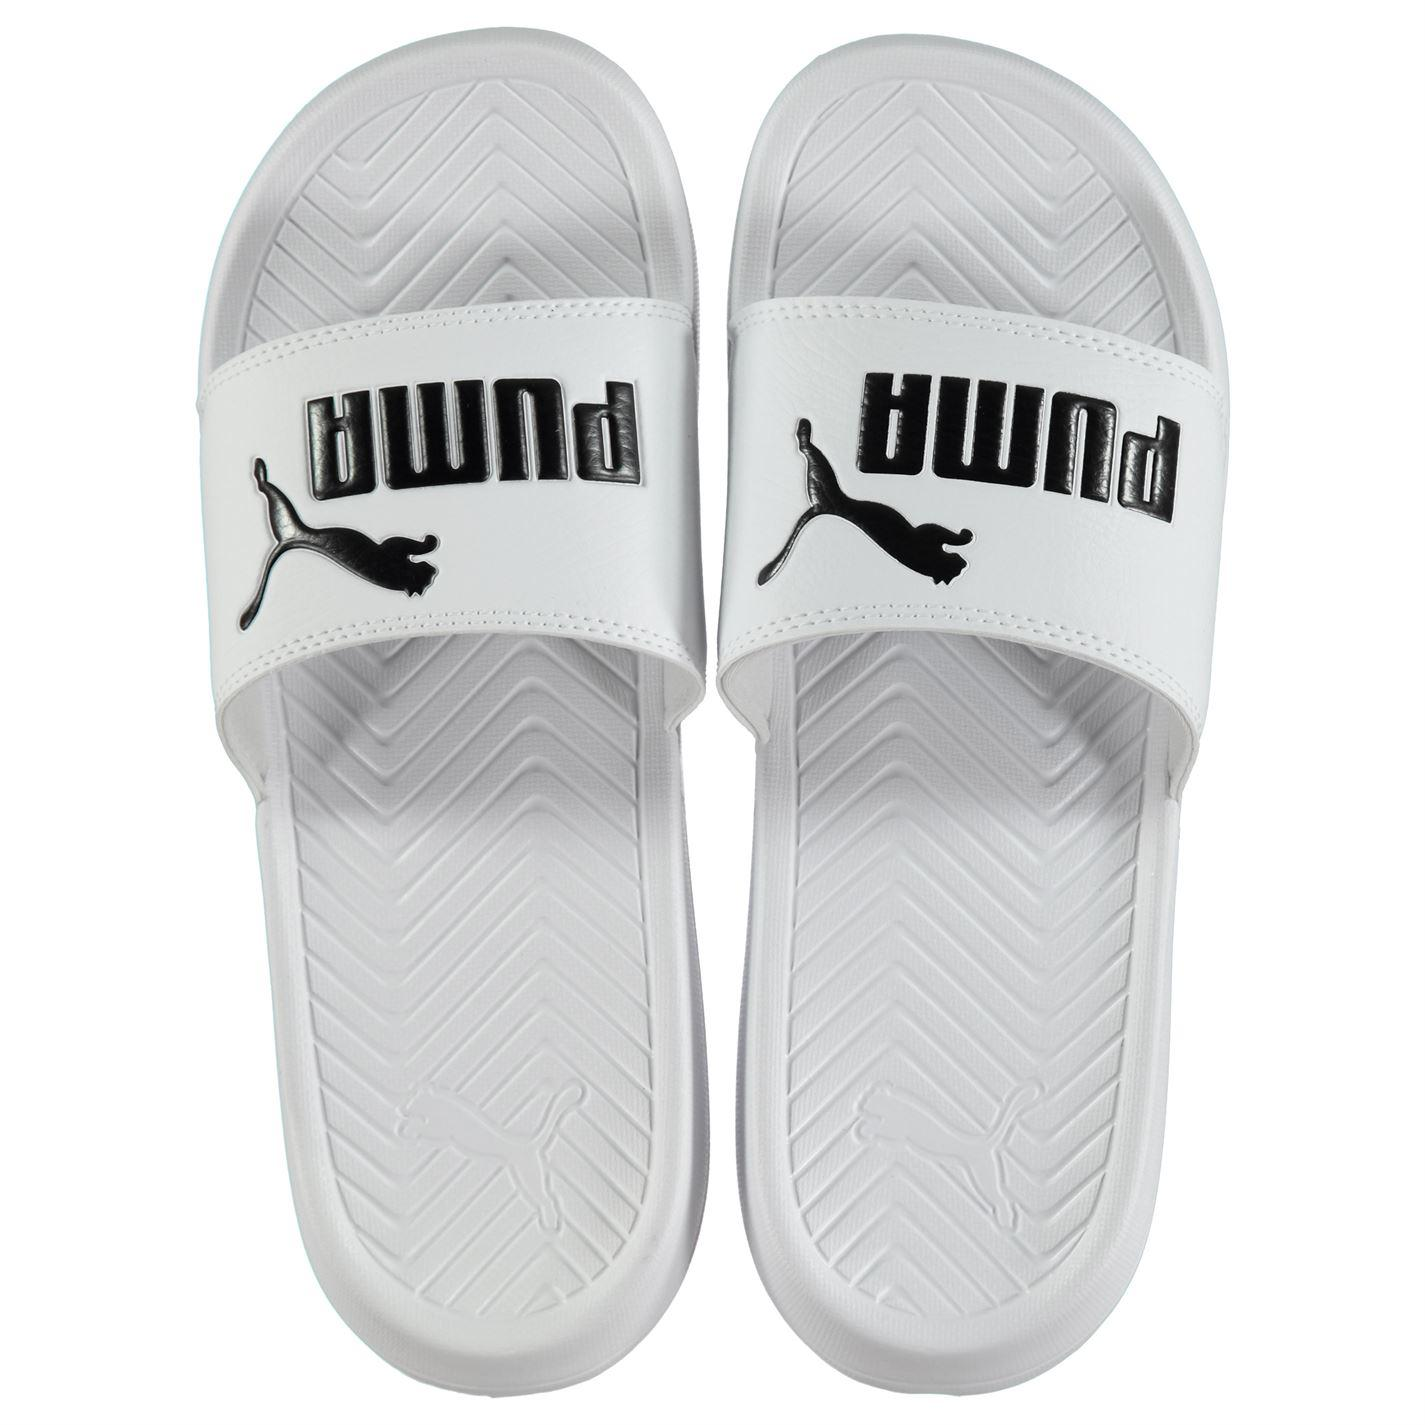 PUMA Popcat Mens Sliders